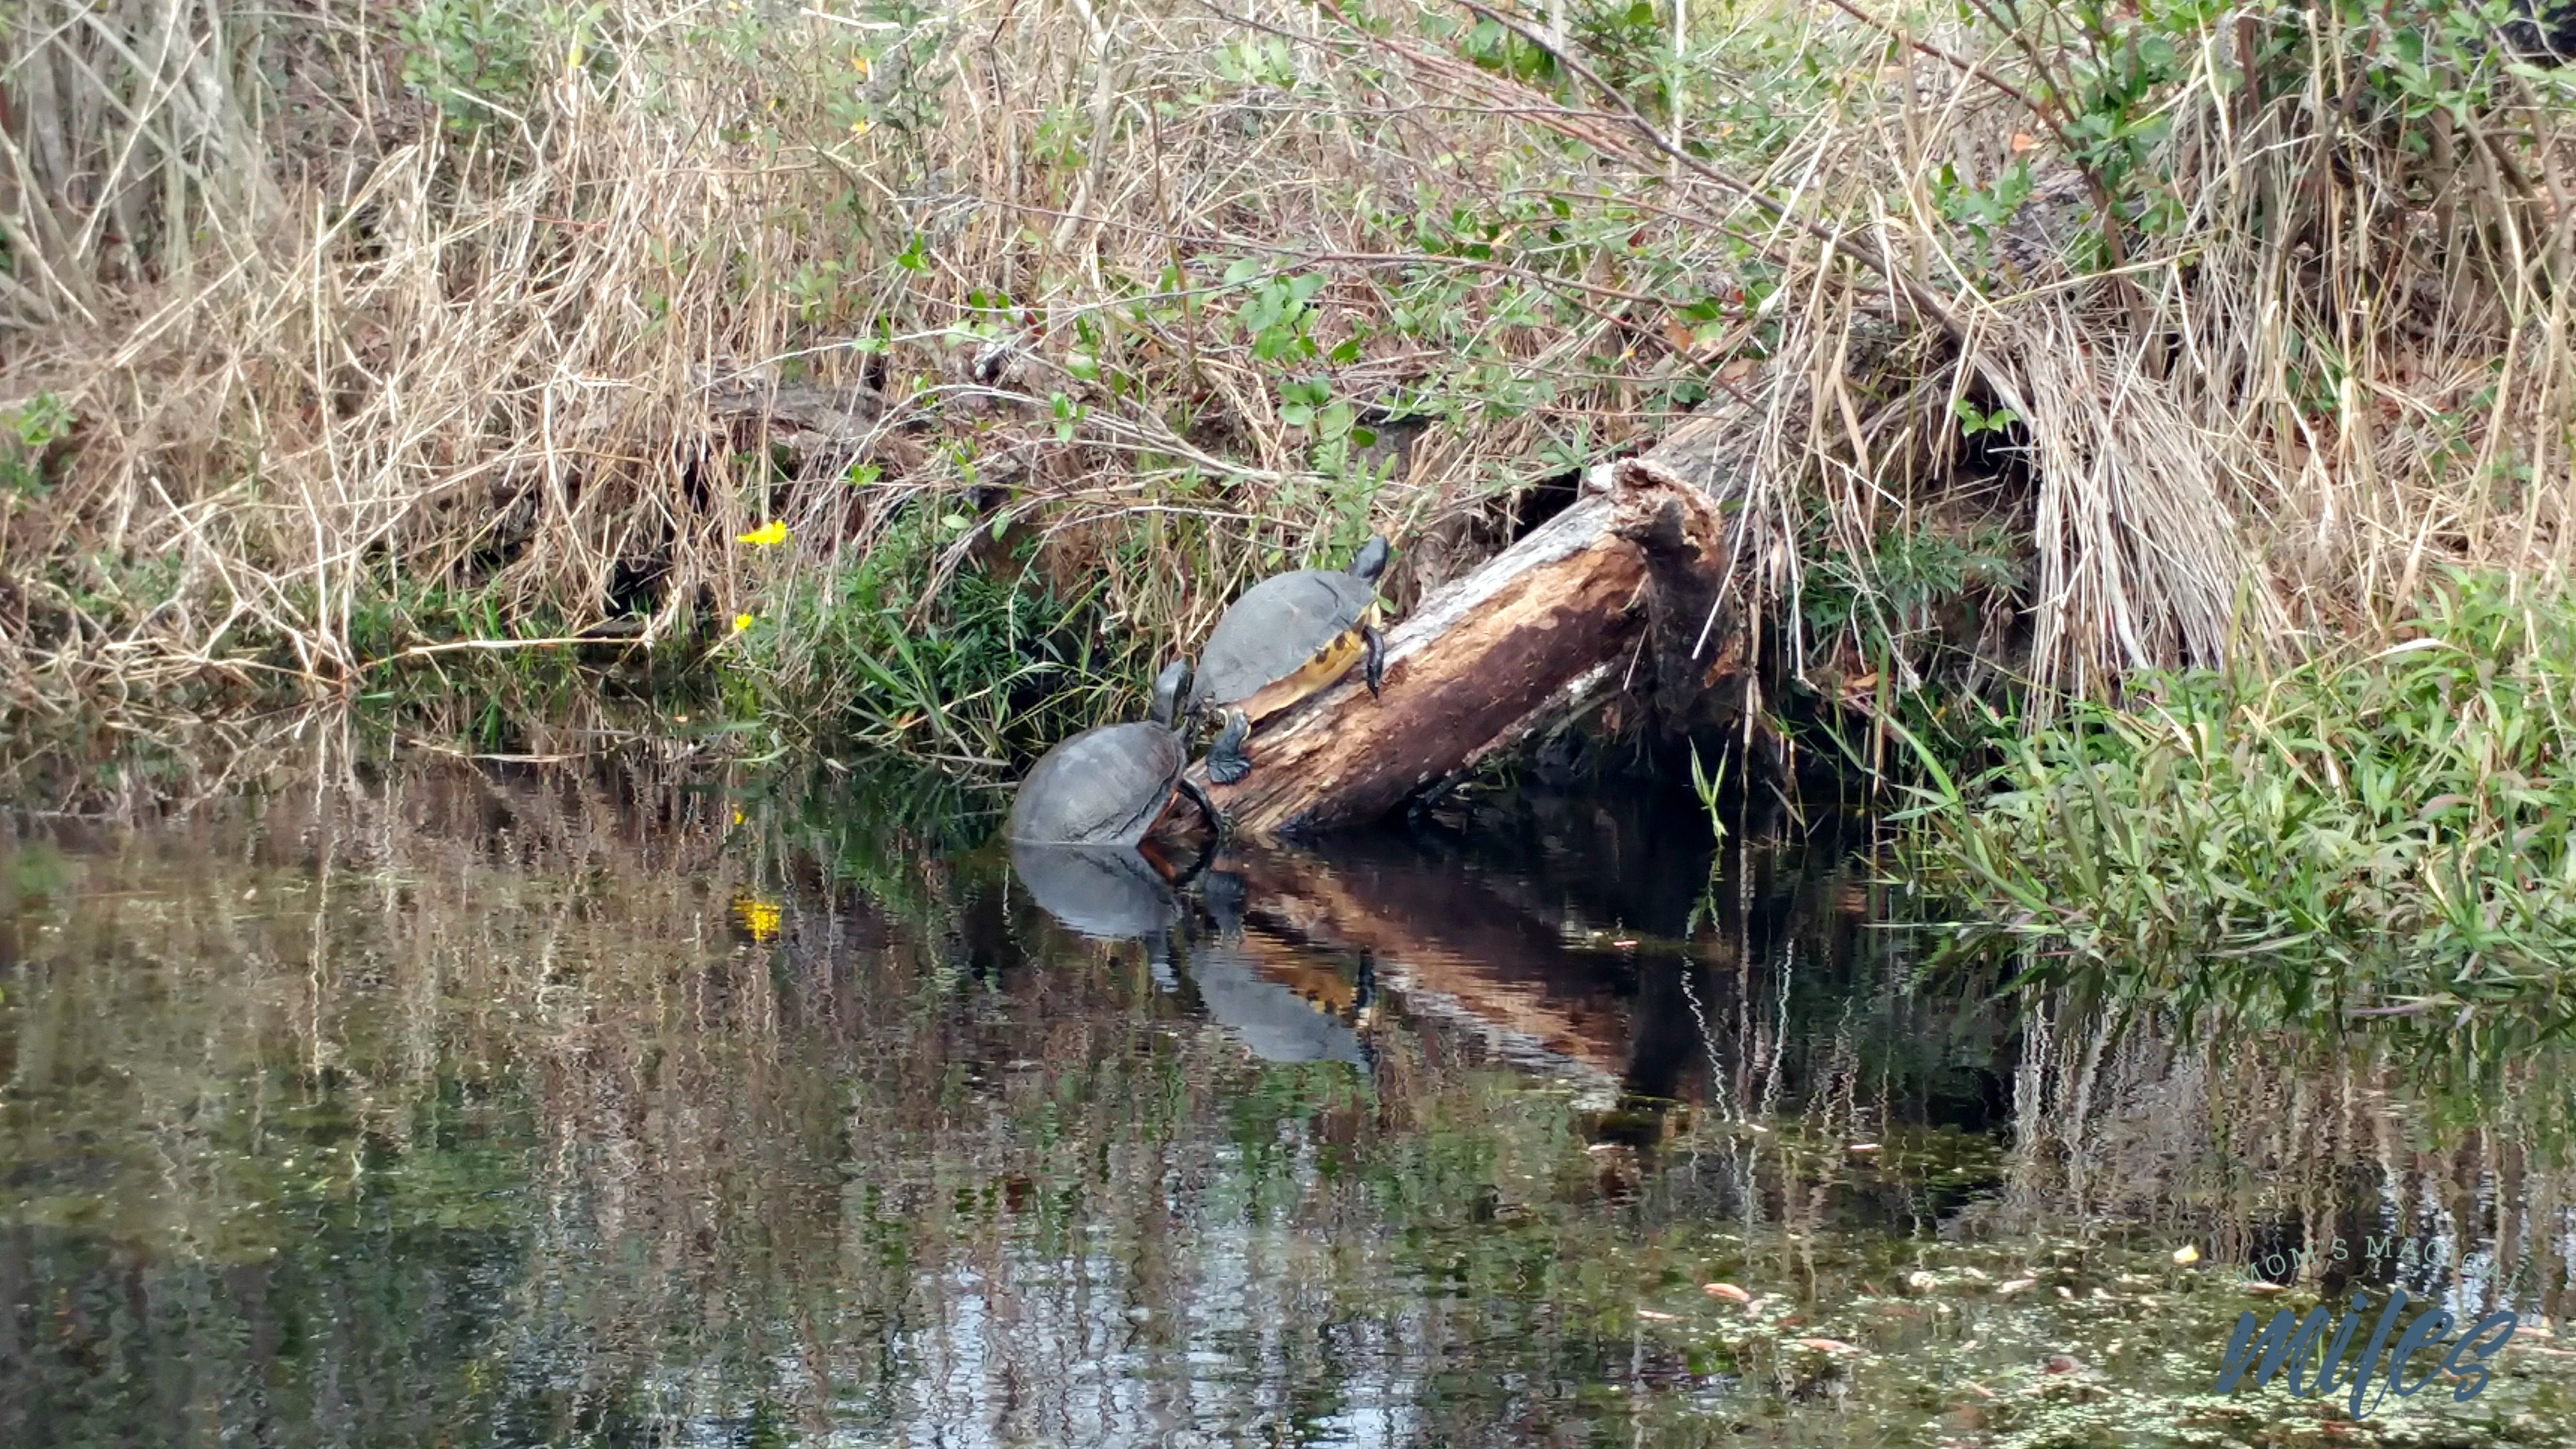 Wildlife abounds in the Okefenokee Swamp!